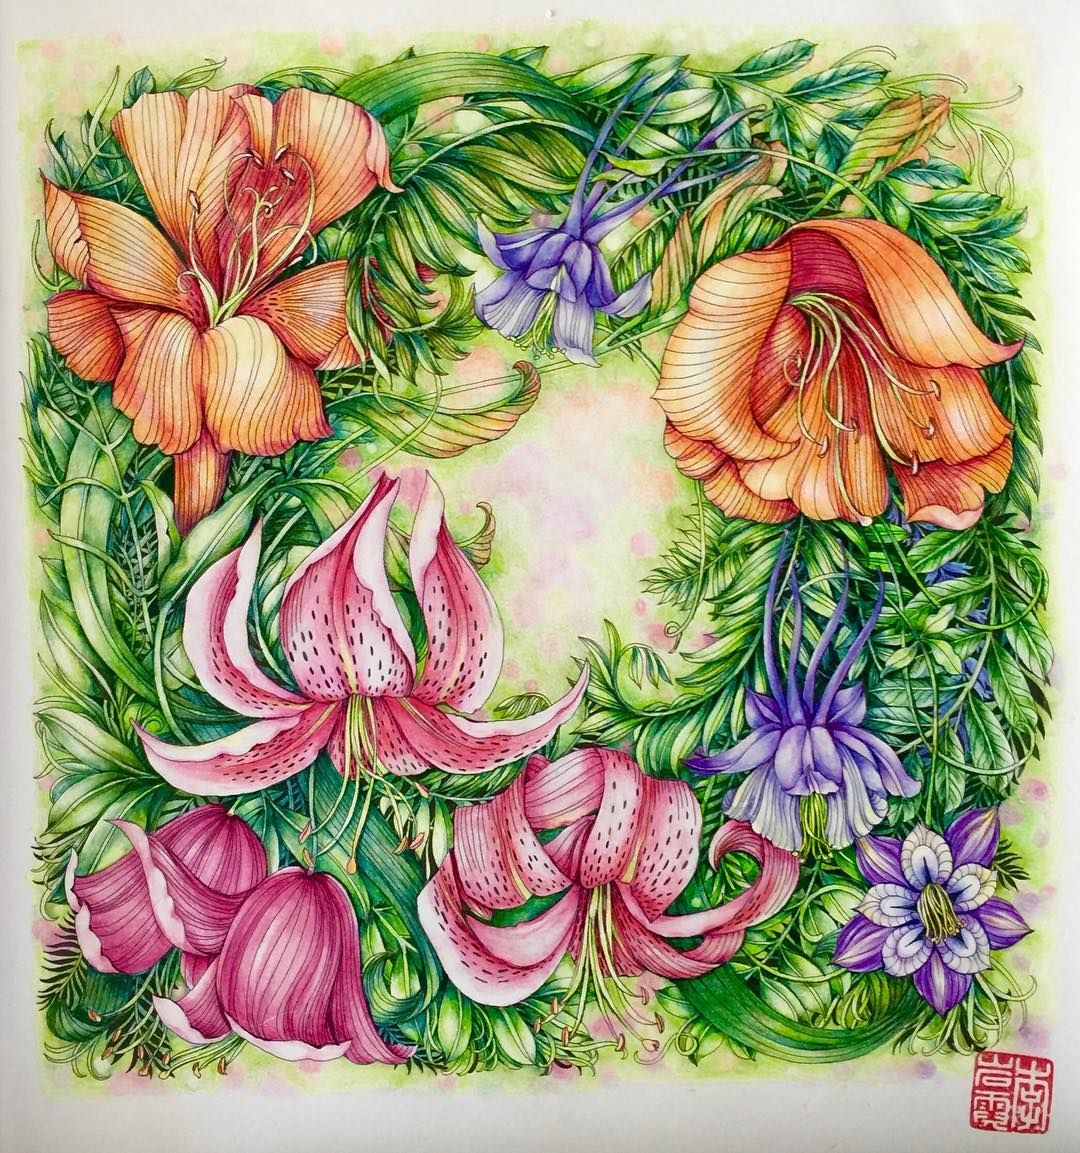 Morning glory flower coloring pages - Inspirational Coloring Pages By Cherrycolours Leiladuly Floribunda Colourpencil Livrosdecolorir Adultcoloring